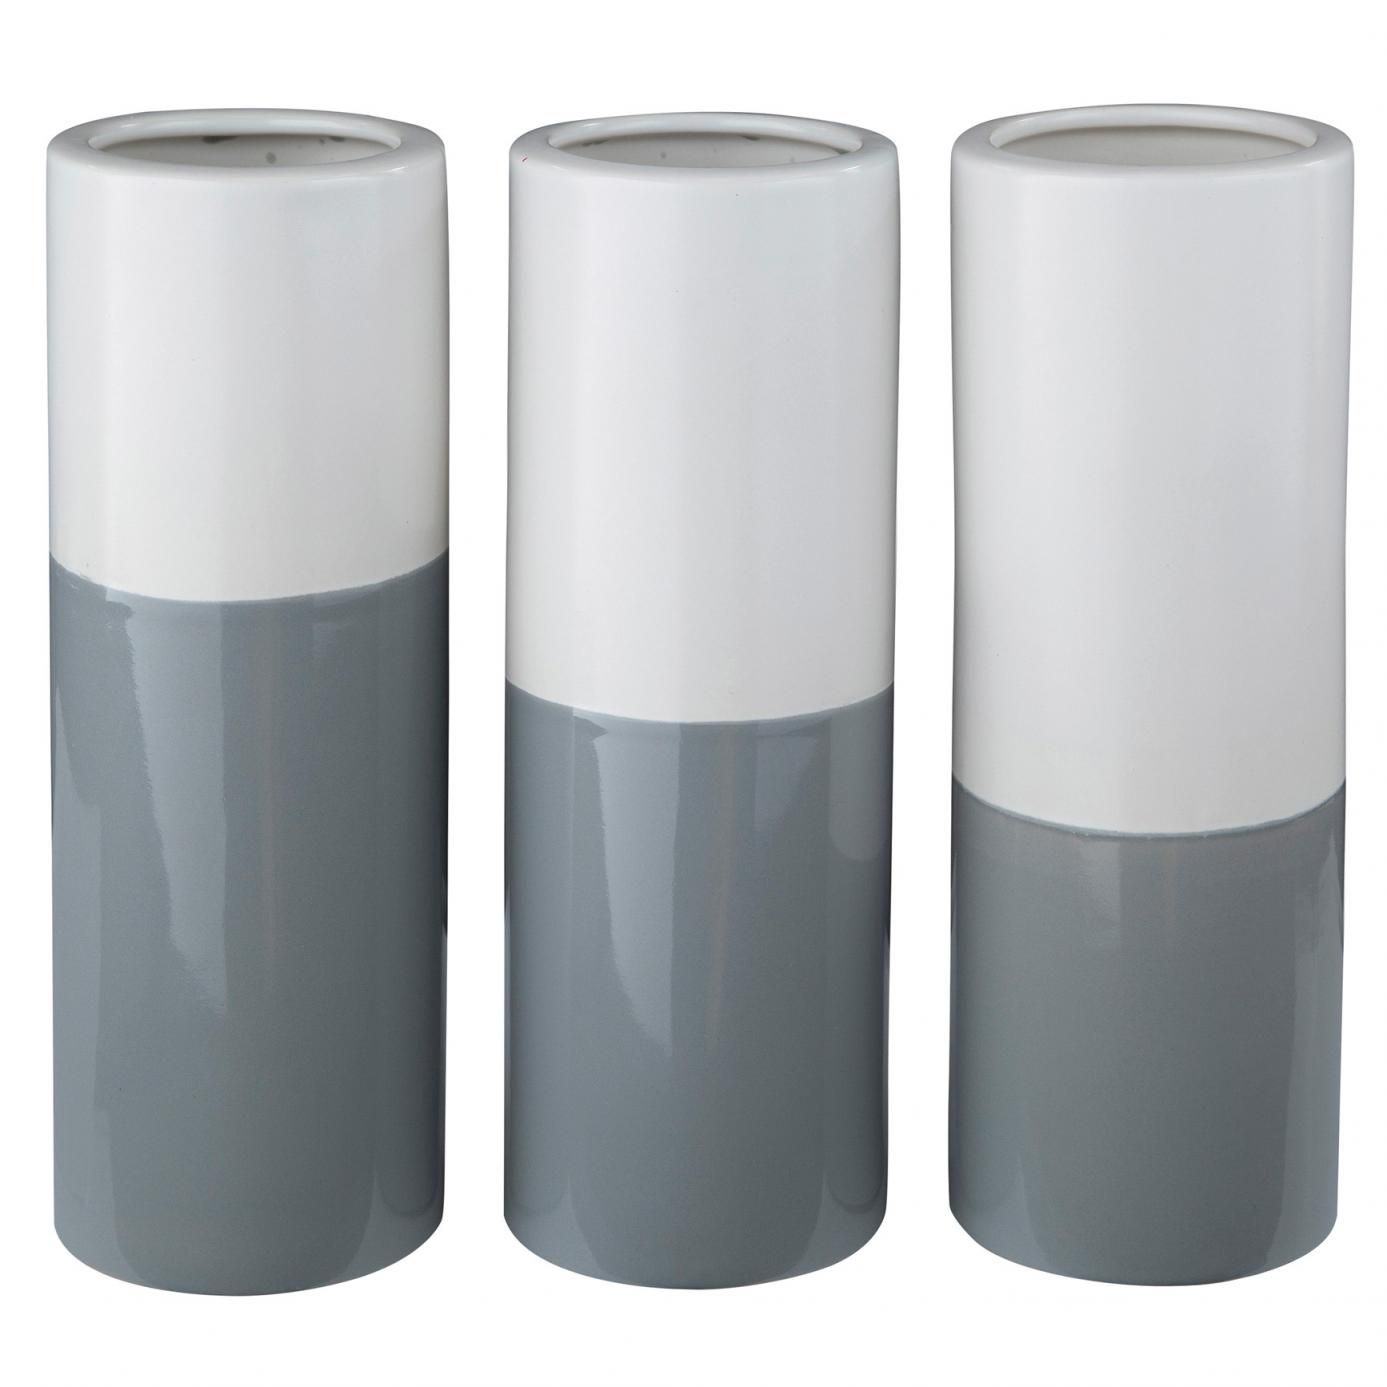 Signature design by ashley dalal gray and white vase set of 3 signature design by ashley dalal gray and white vase set of 3 reviewsmspy